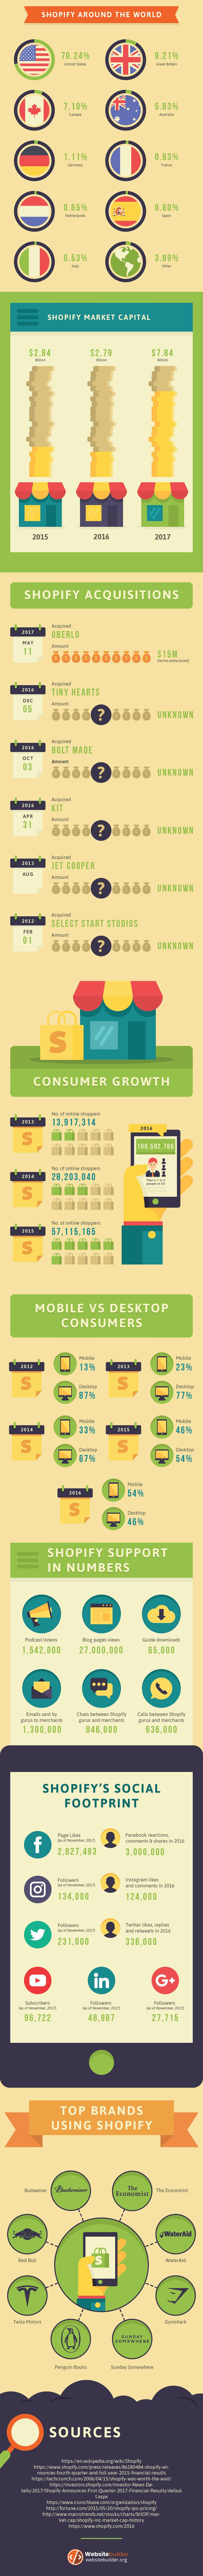 shopify infographic, shopify, infographic